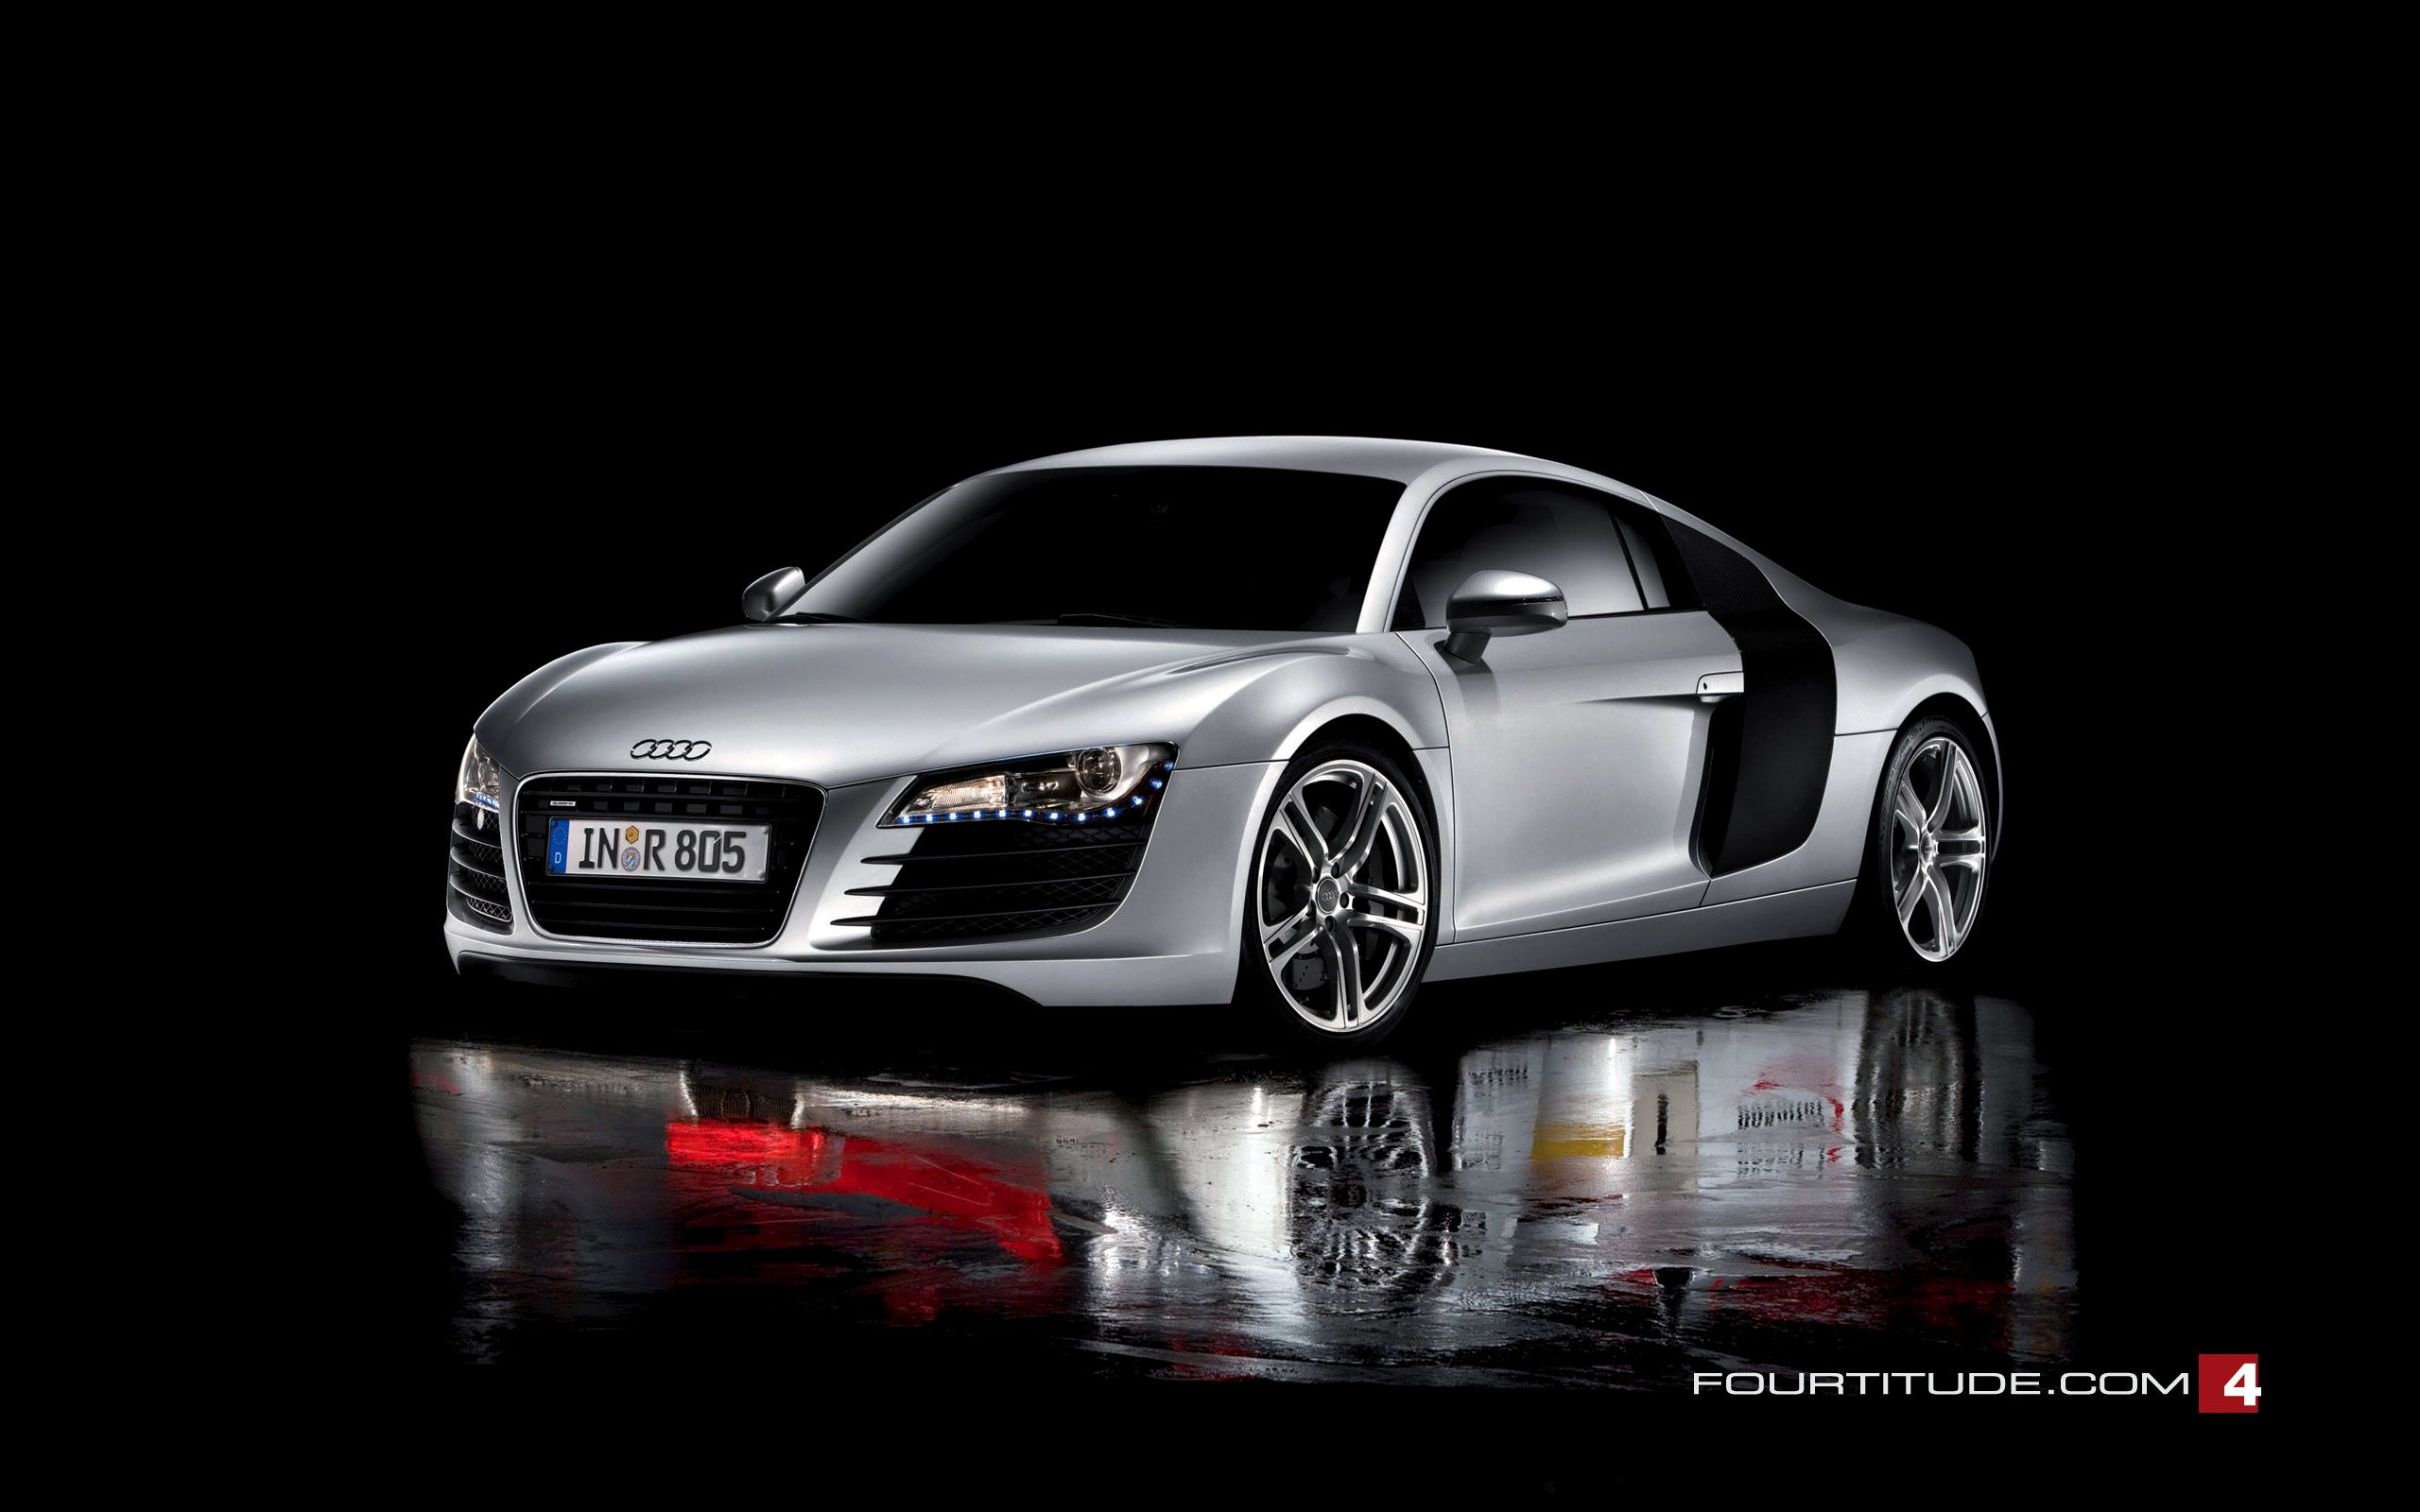 Audi Wallpaper Cars Httphdcarwallfxcomaudiwallpapercars - Cool cars and prices